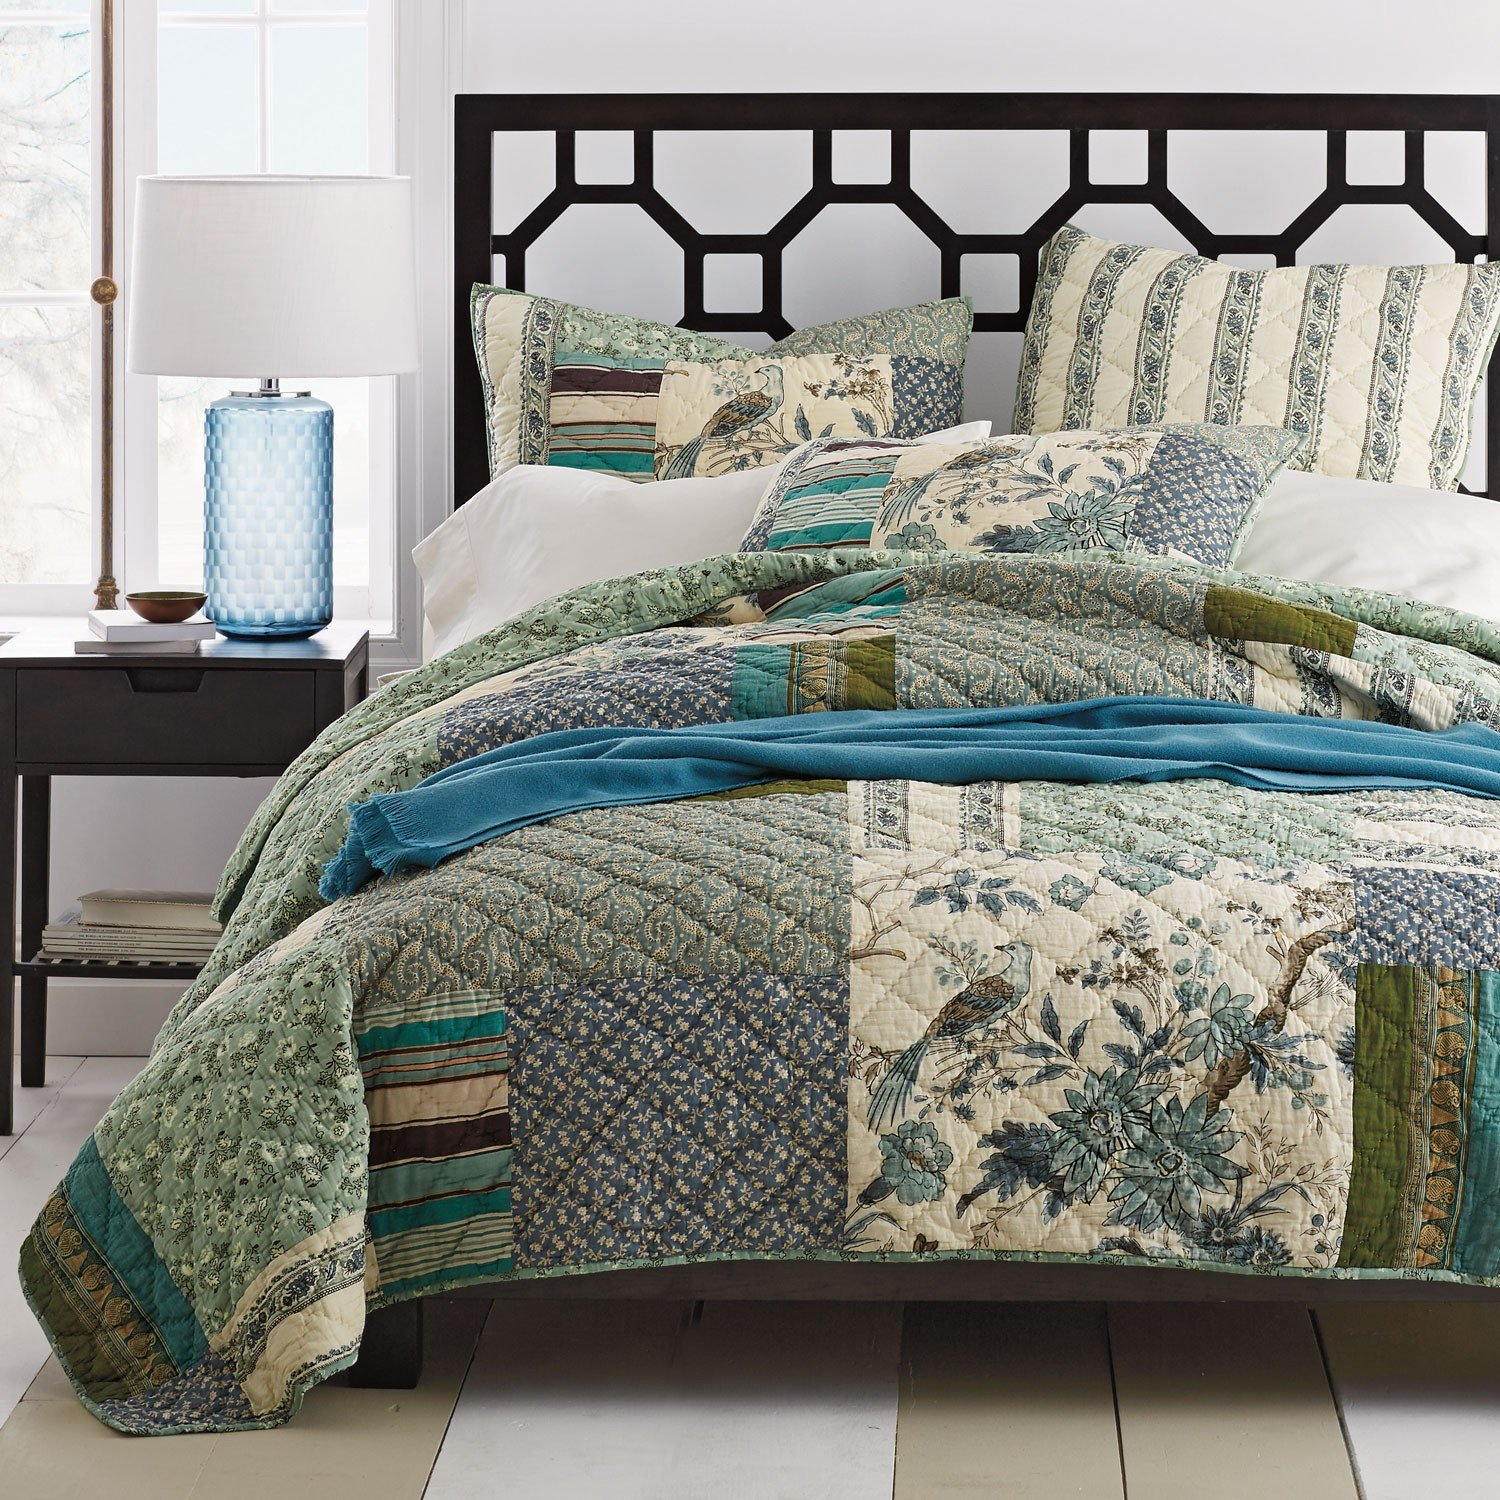 Tache 3 Piece Cotton Floral Patchwork Forest Glade Green Reversible Bedspread Quilt Coverlet Set, Queen by Tache Home Fashion